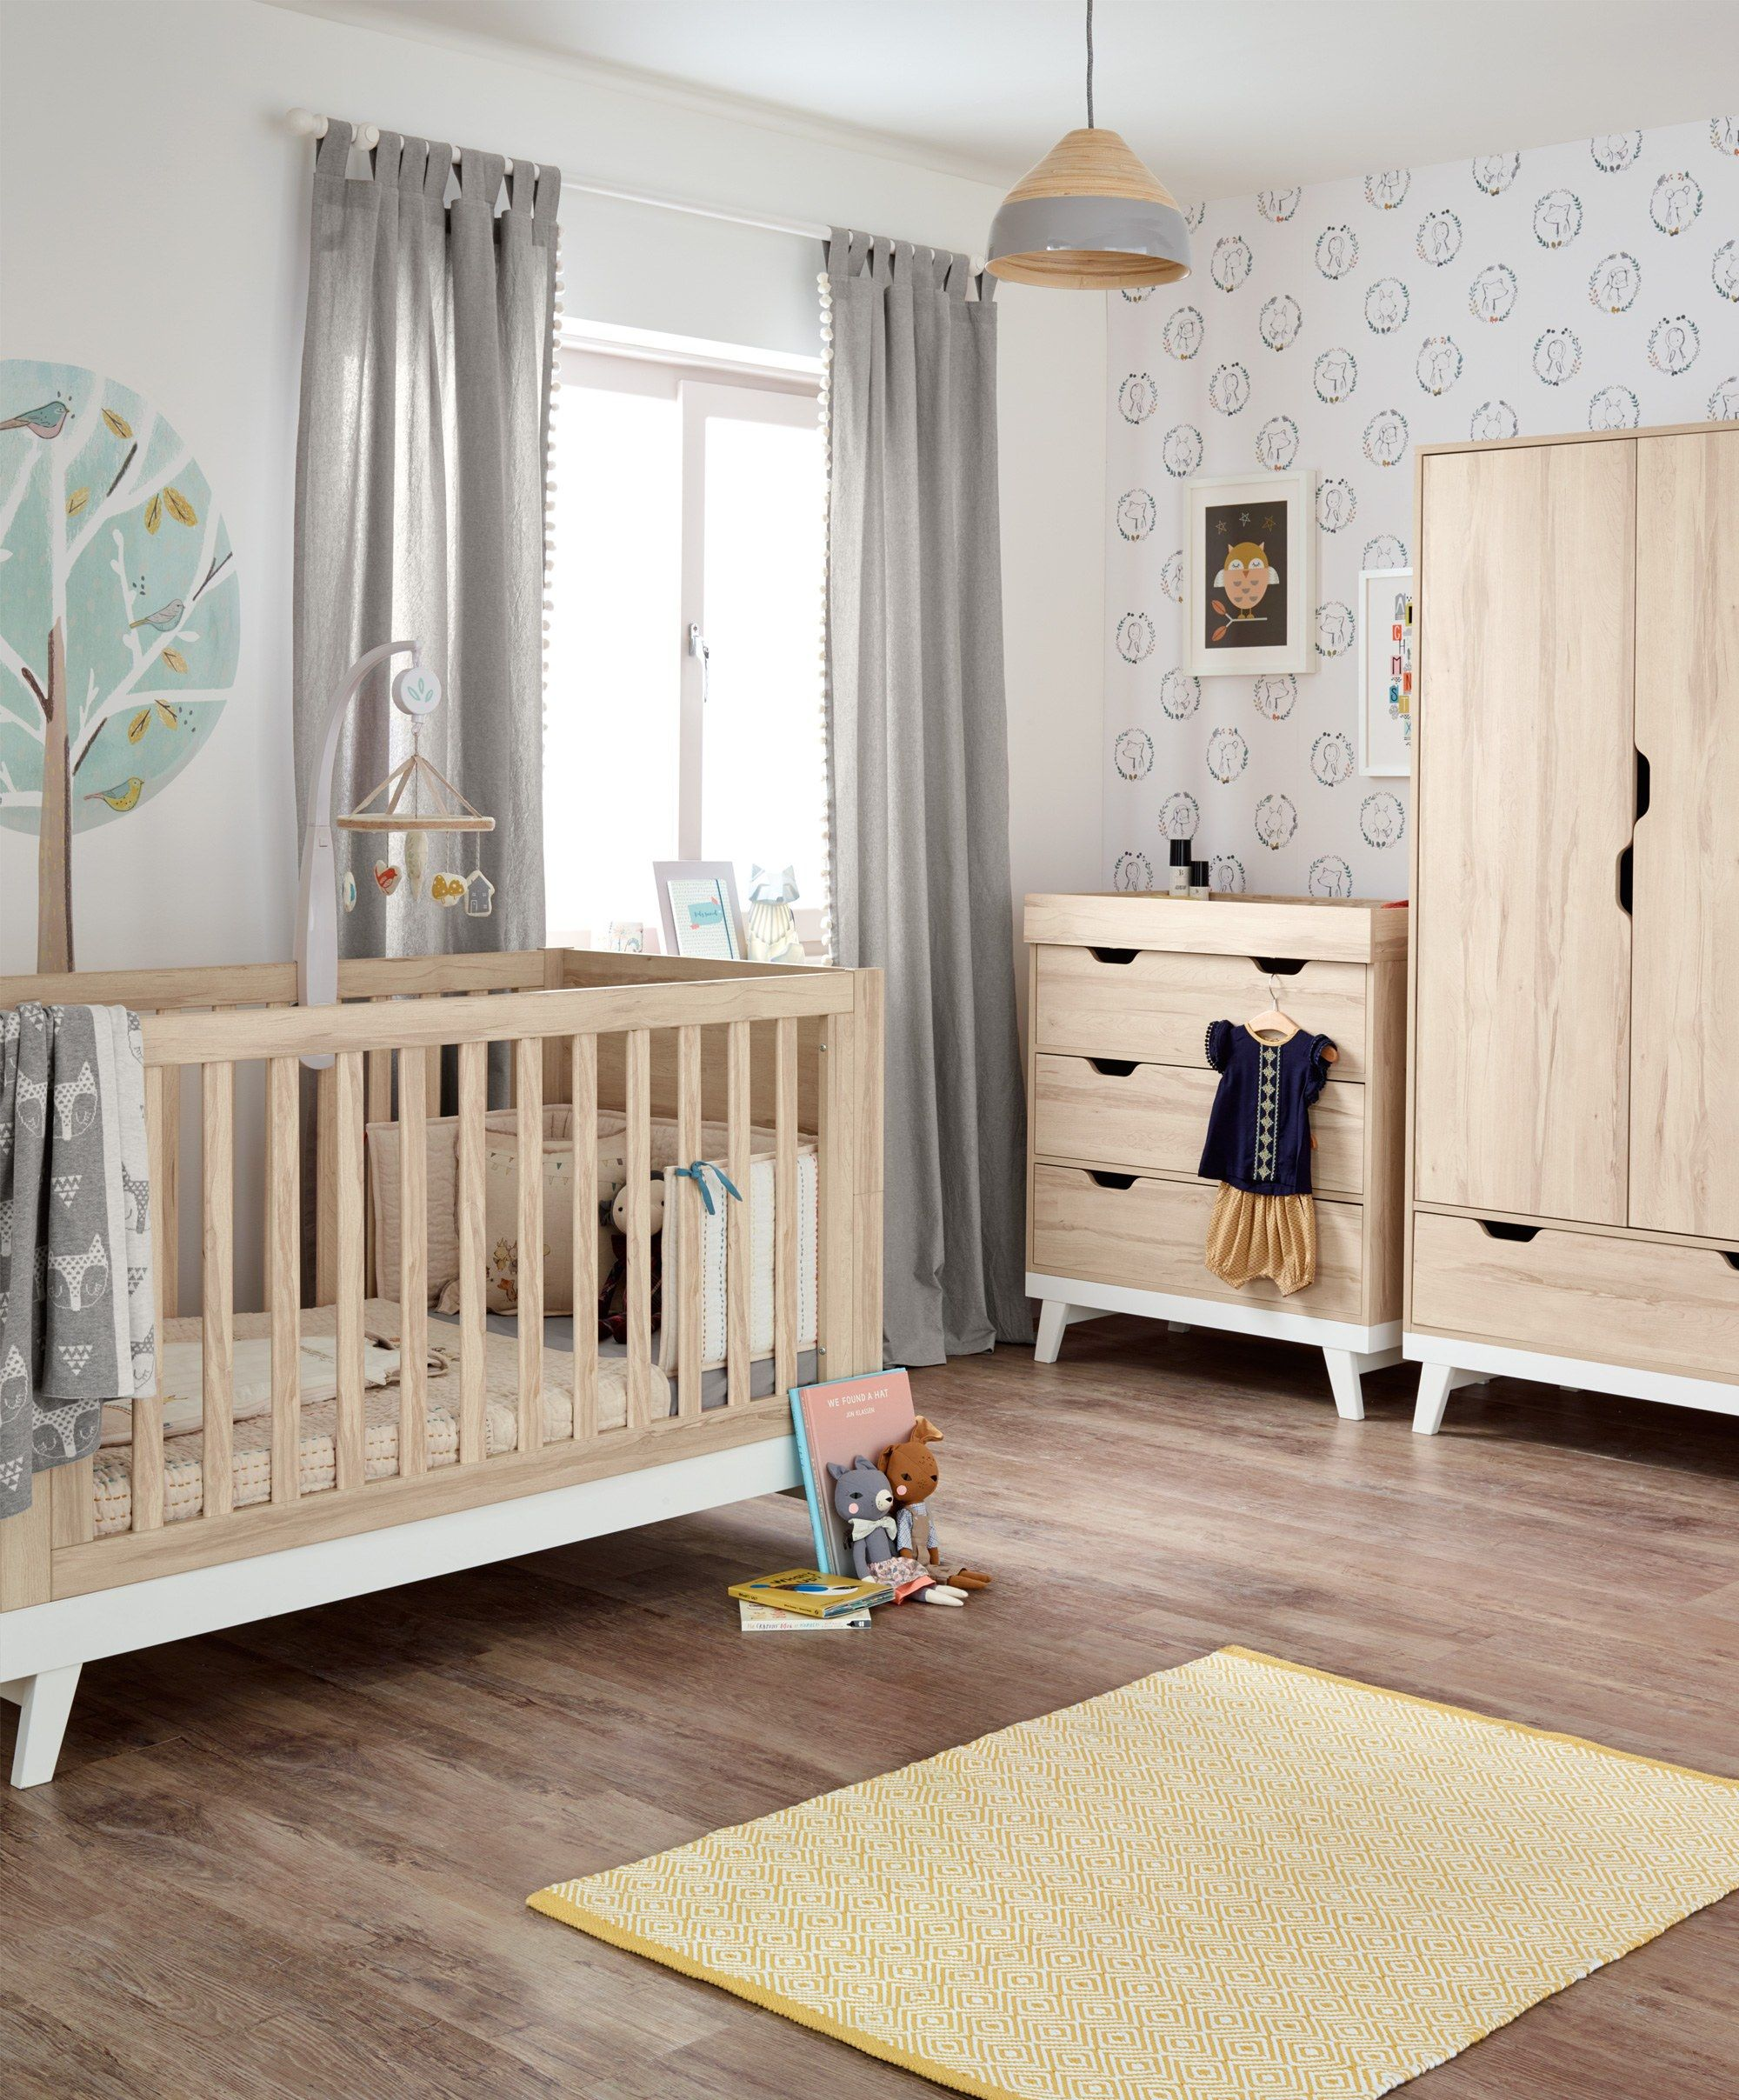 Lawson 3 Piece Nursery Furniture Set with Cot to Toddler Bed ...